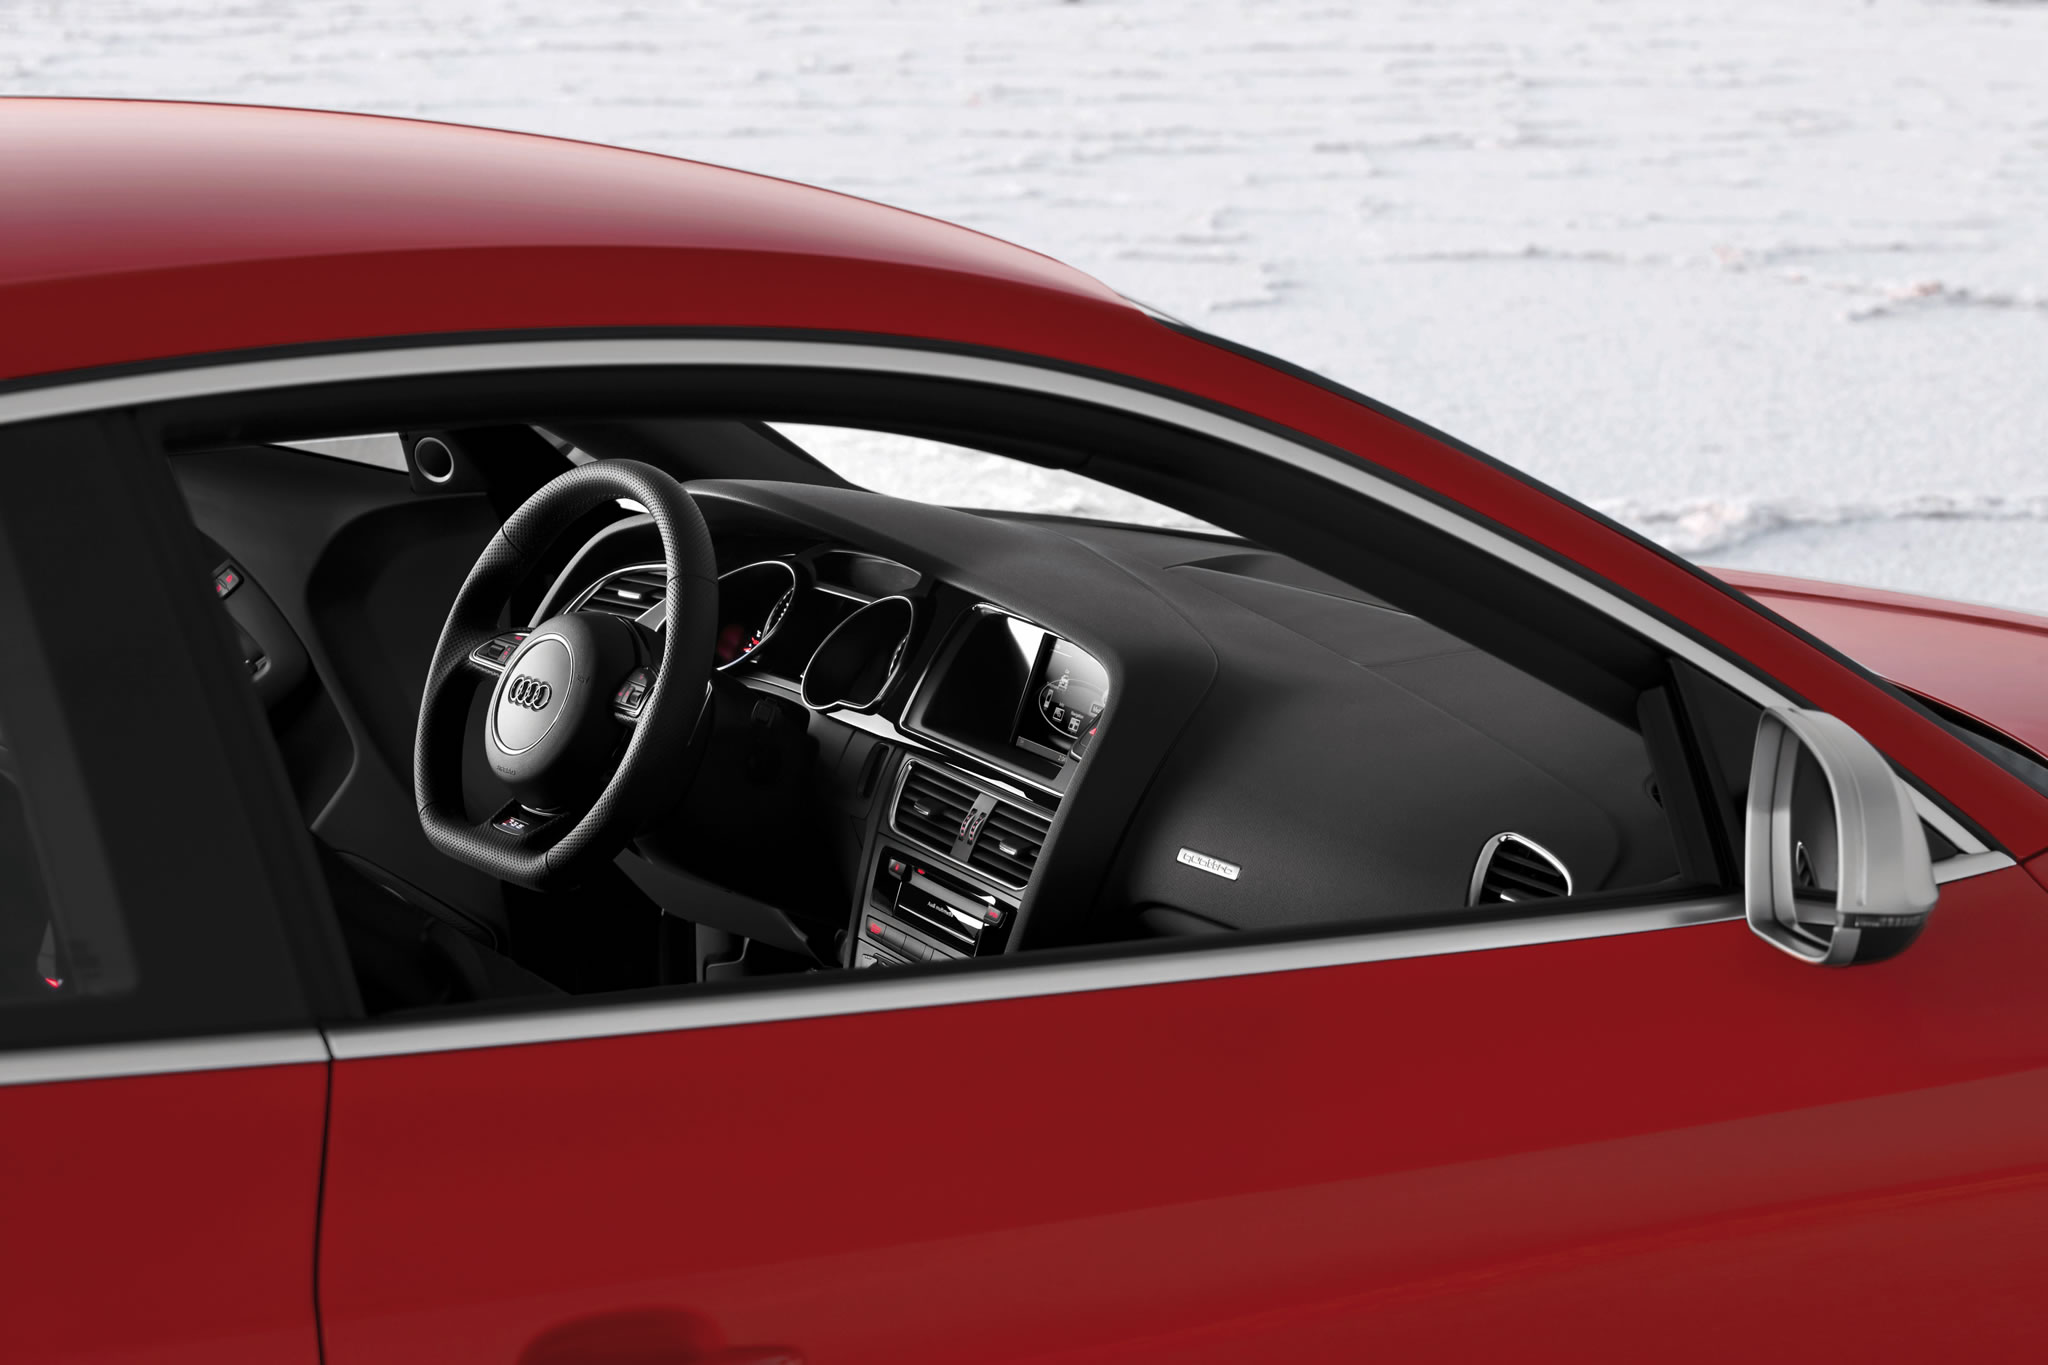 2014 audi rs 5 coupe detail photo misano red color size 2048 x 1365 nr 41 49. Black Bedroom Furniture Sets. Home Design Ideas